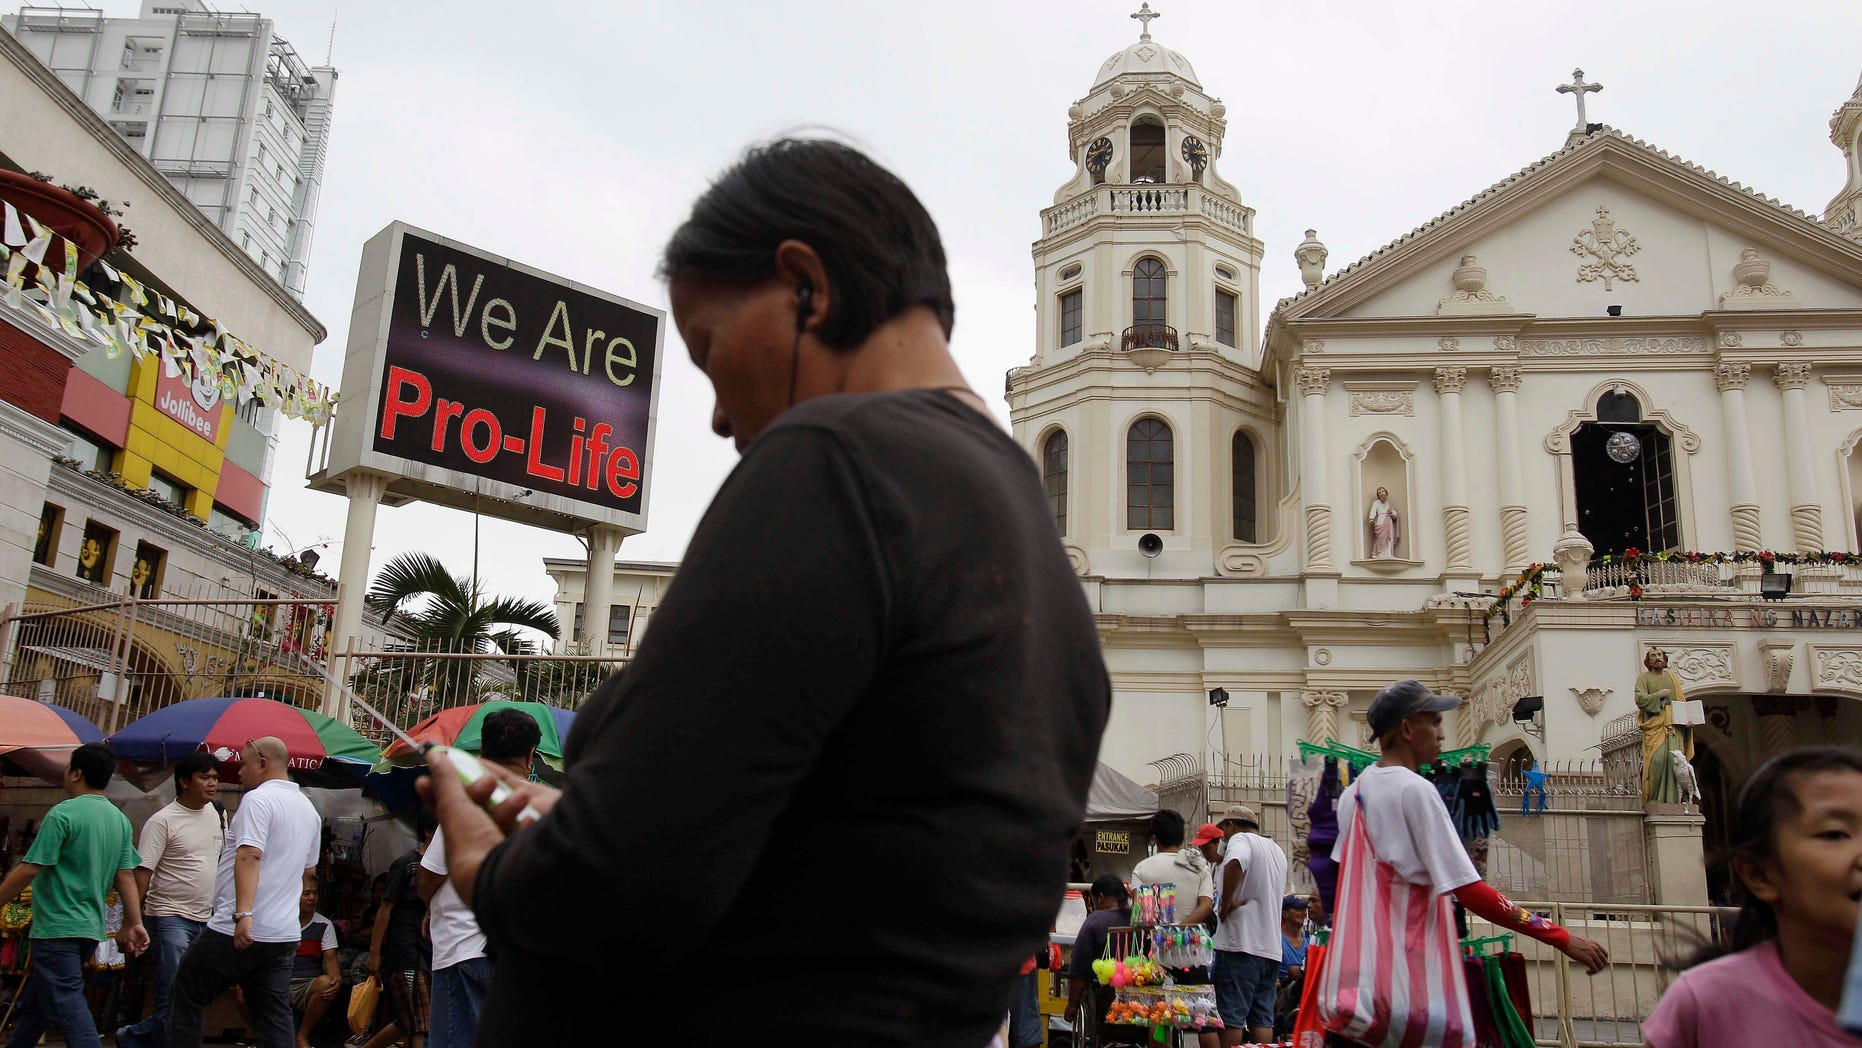 """A """"Pro-Life"""" sign flashes on an electric signboard outside the Roman Catholic Minor Basilica of the Black Nazarene in downtown Manila, Philippines on Thursday, Jan. 3, 2013. Philippine President Benigno Aquino III last month signed the Responsible Parenthood and Reproductive Health Act of 2012. The law that provides state funding for contraceptives for the poor pitted the dominant Roman Catholic Church in an epic battle against the popular Aquino and his followers. (AP Photo/Aaron Favila)"""